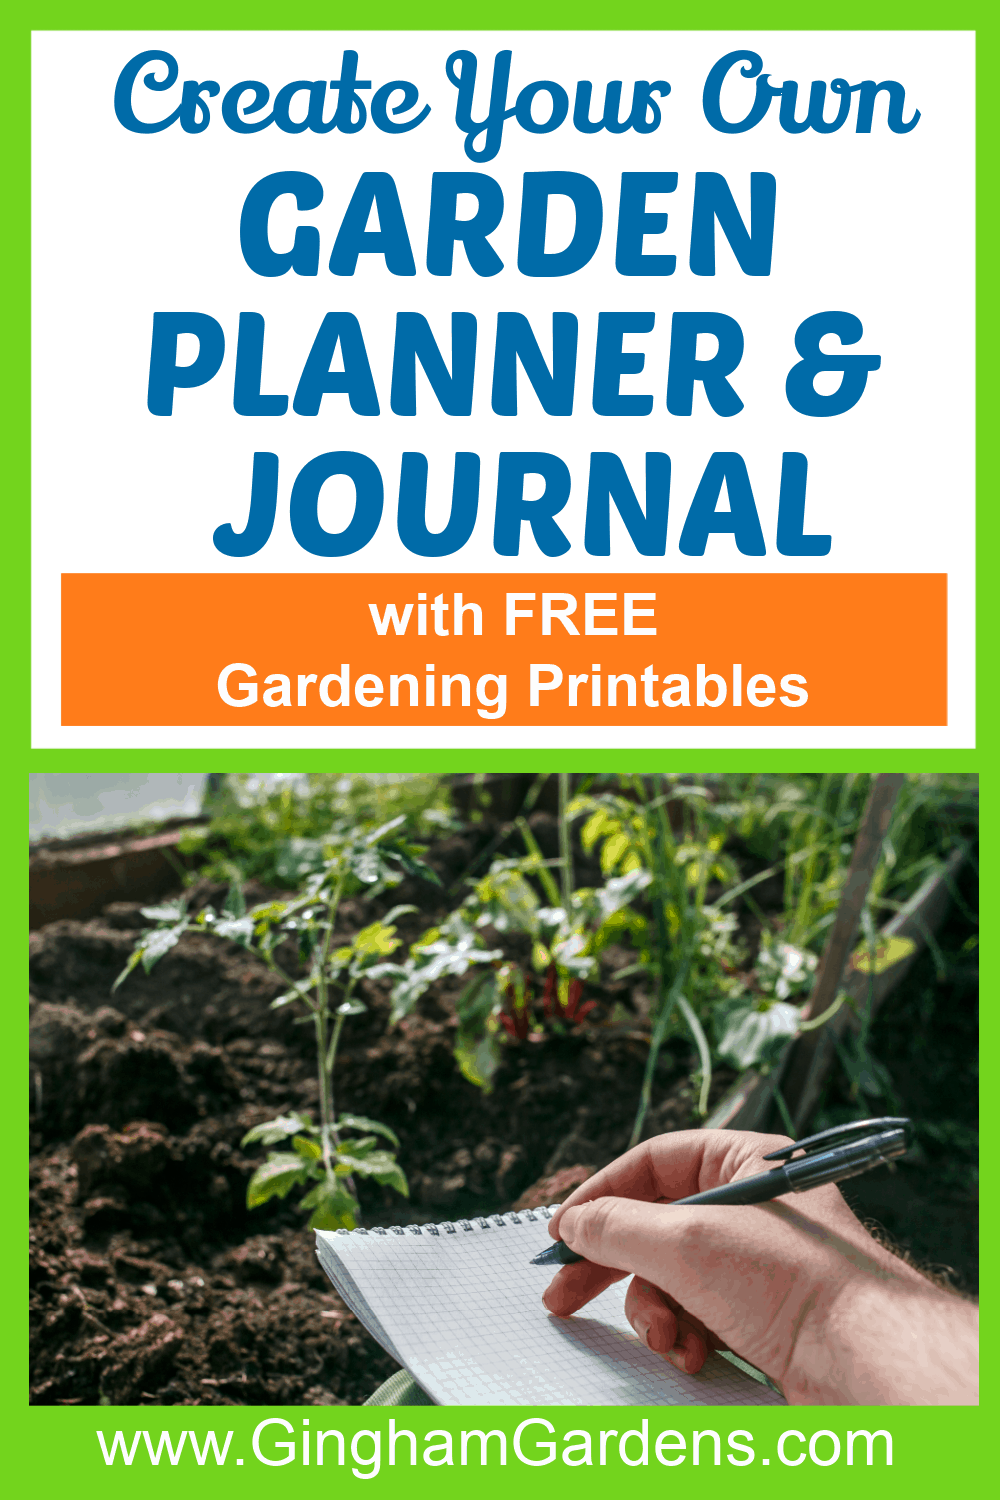 Image of Gardener with pen and paper in a garden with text overlay - Create Your Own Garden Planner & Journal with free gardening printables